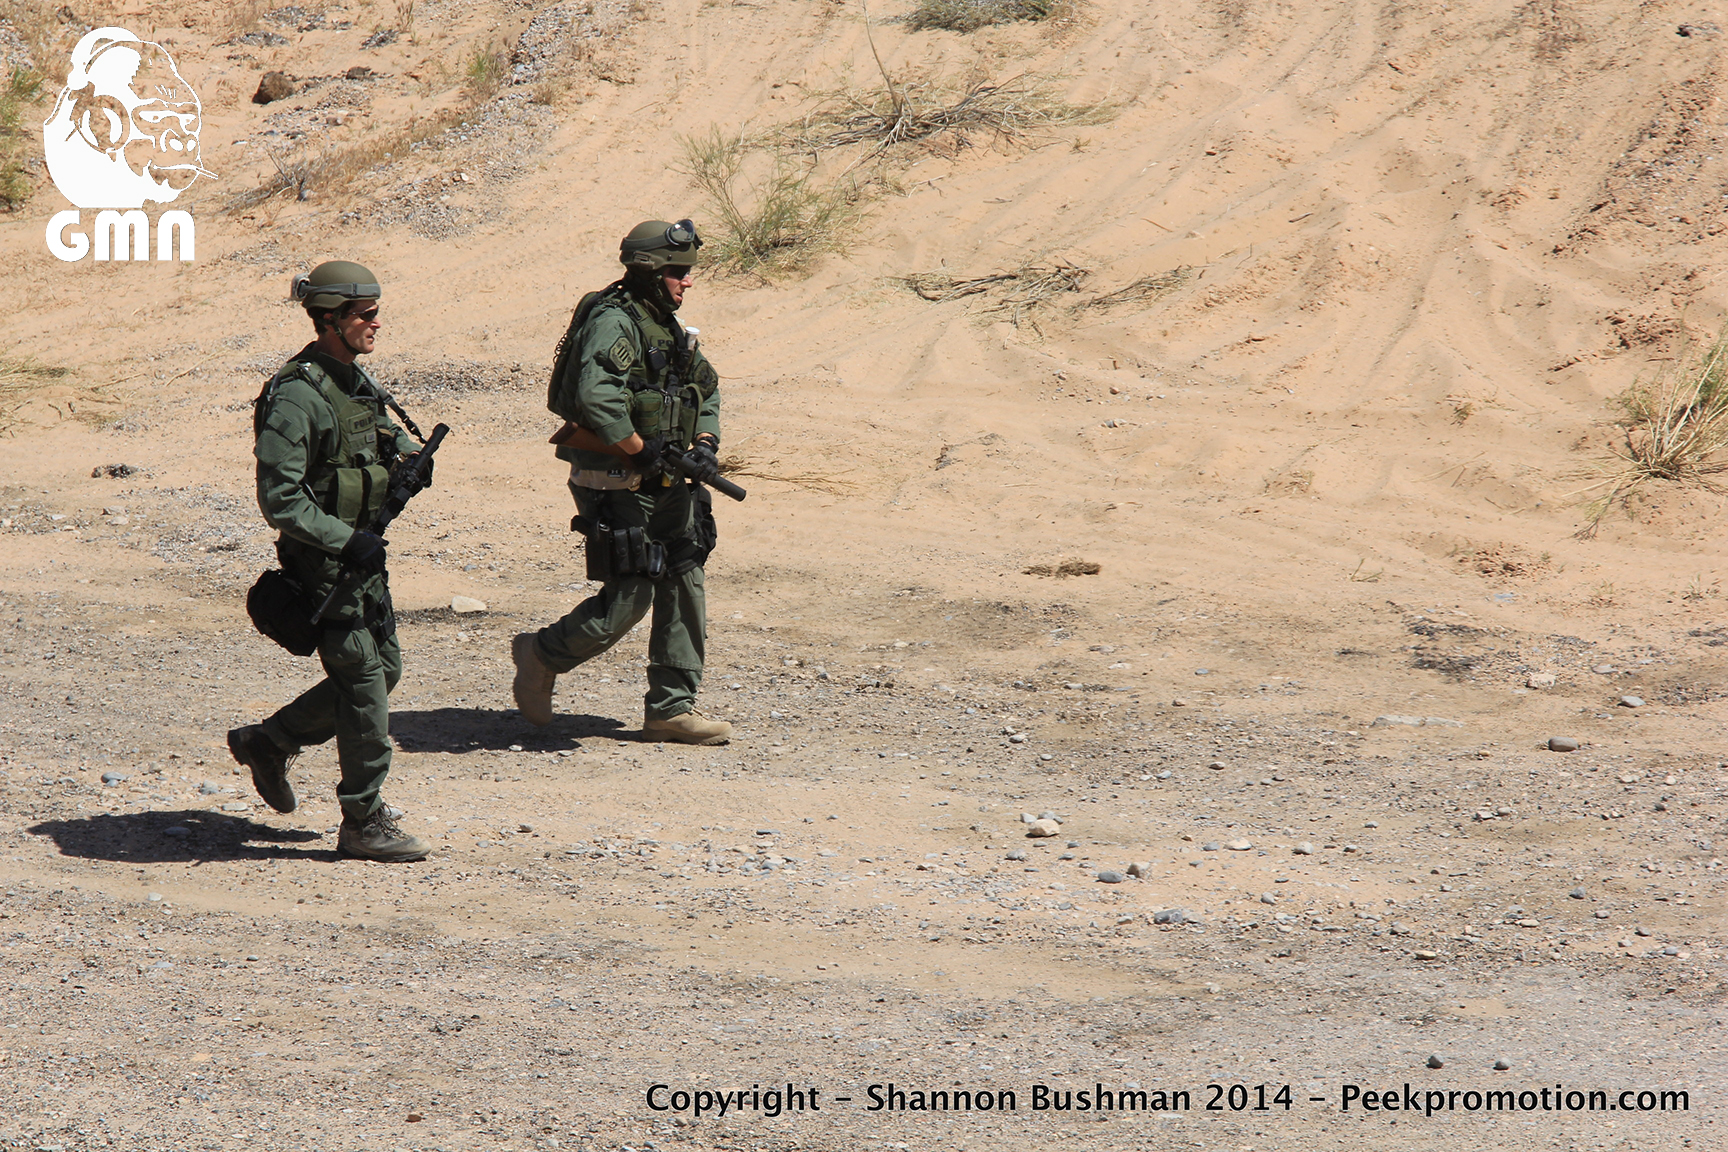 21WIREi-Bundy-Fed-Standoff-April-12-2014-Copyright-GMN